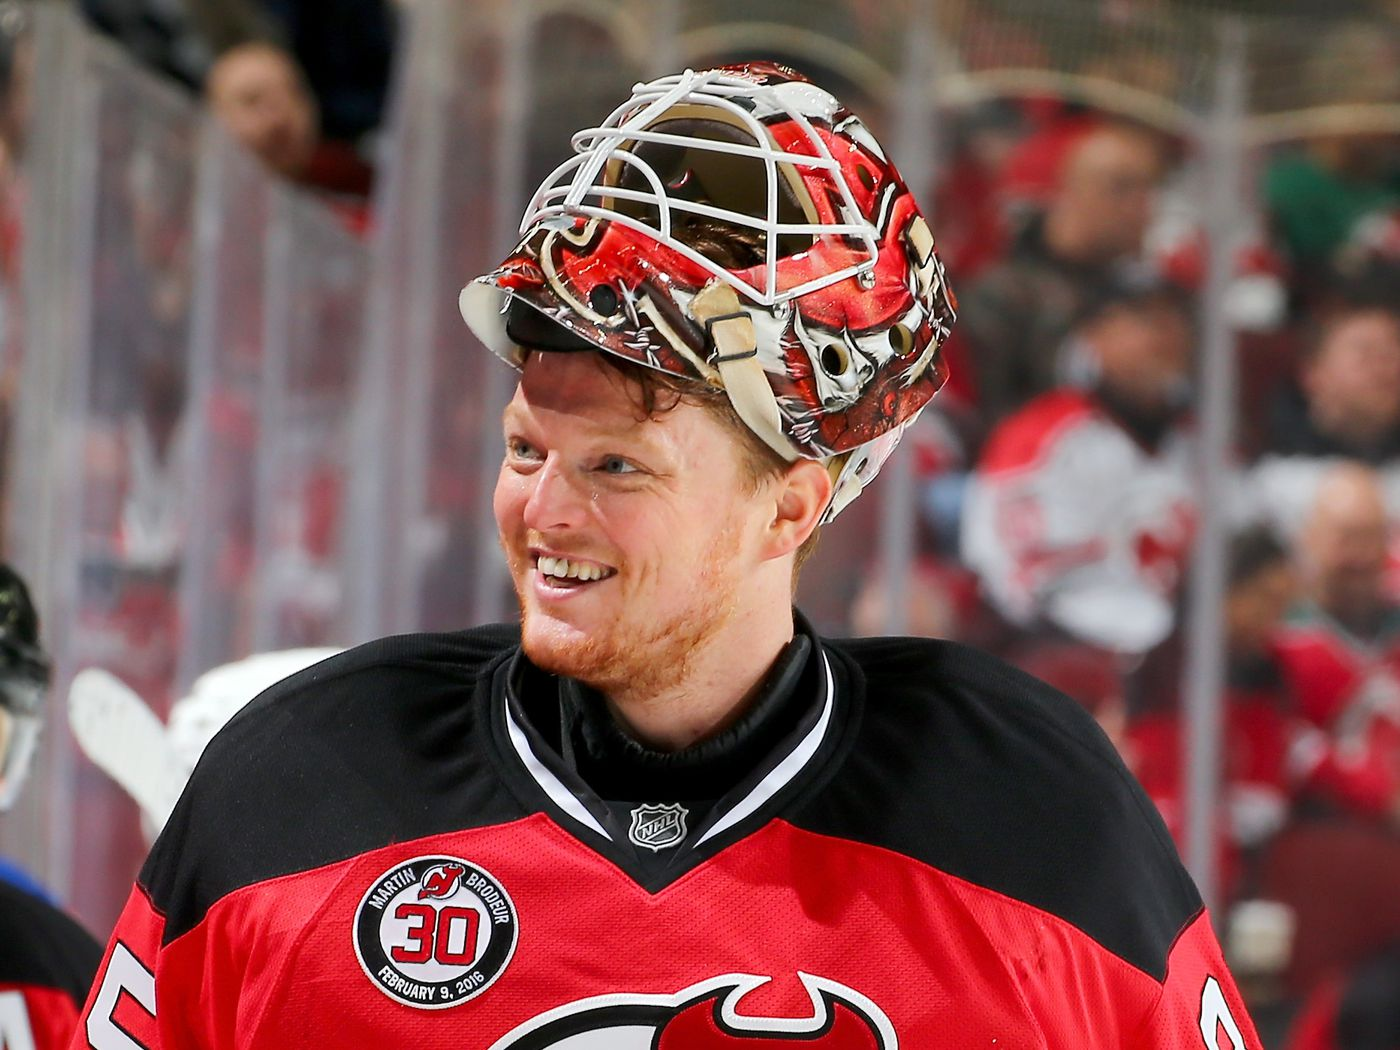 reputable site 53285 8fd1d Cory Schneider Named to USA Preliminary Roster for 2016 ...